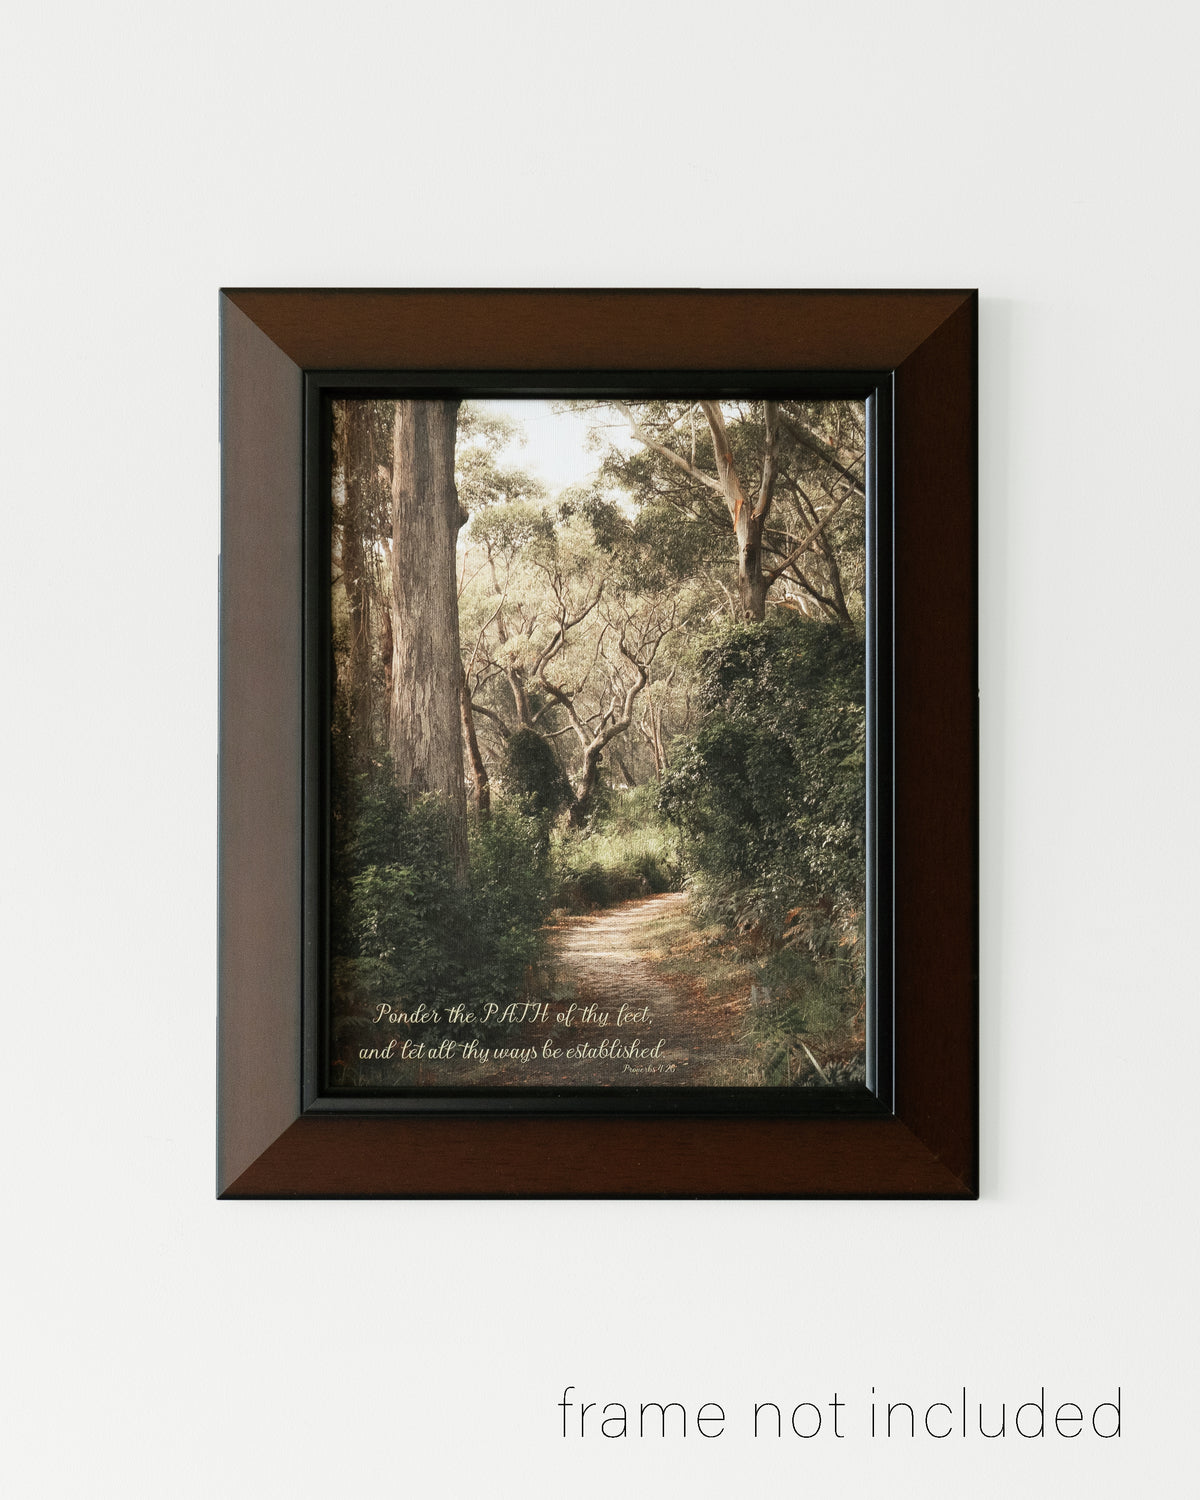 Framed print of Path of light through the Australian Bush with scripture verse